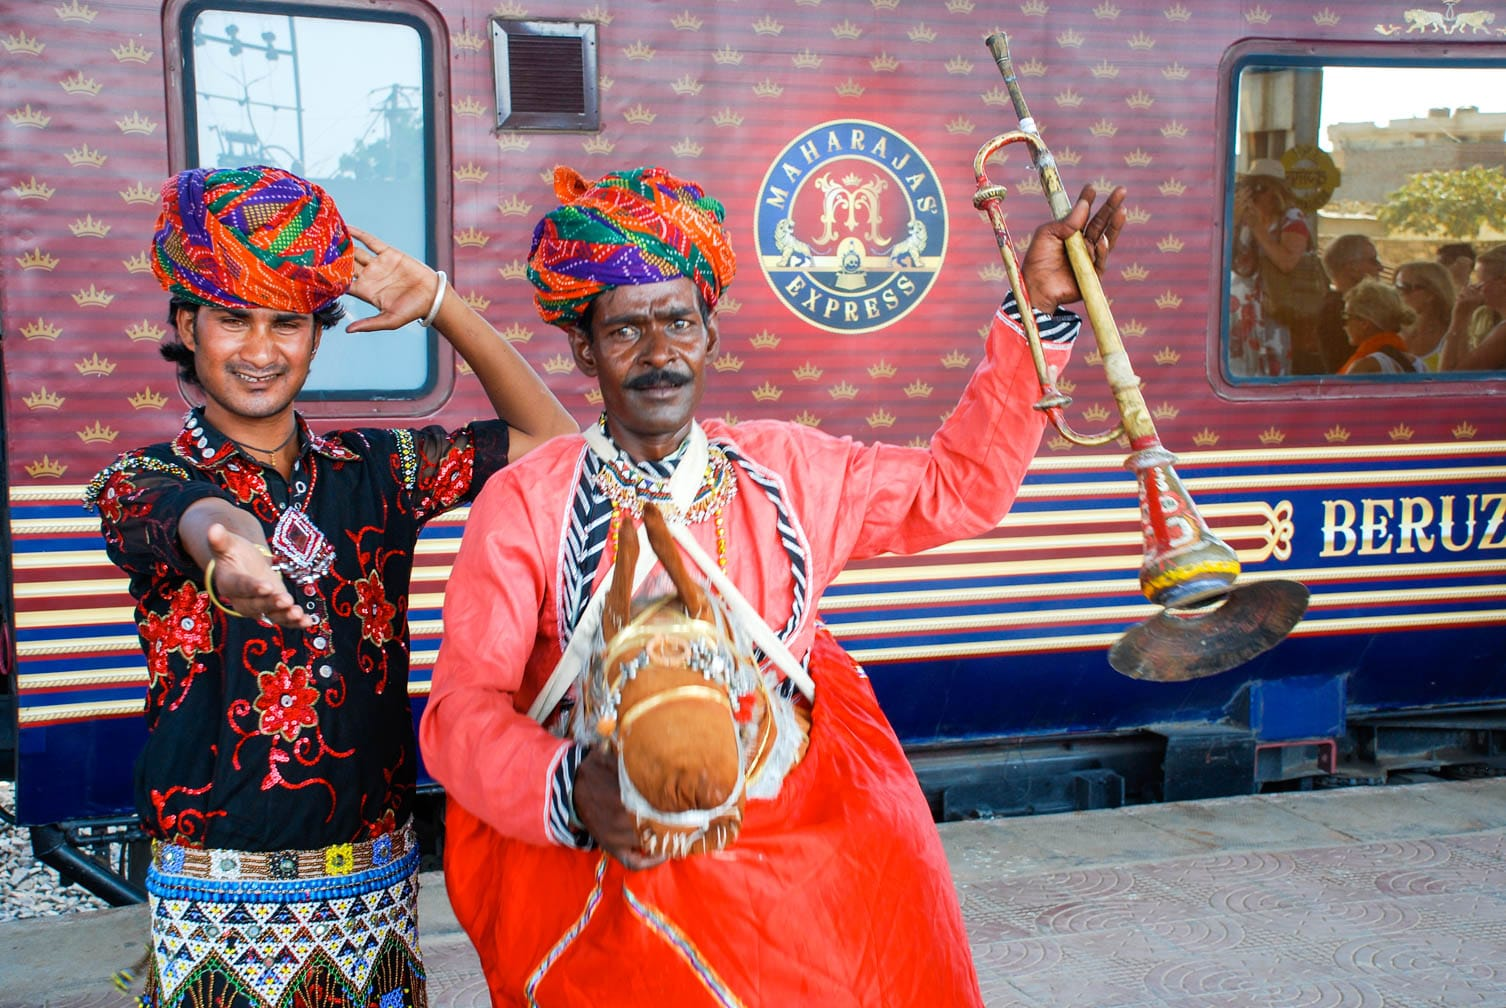 Two Indian dancers with instruments on the Maharajas' Express train